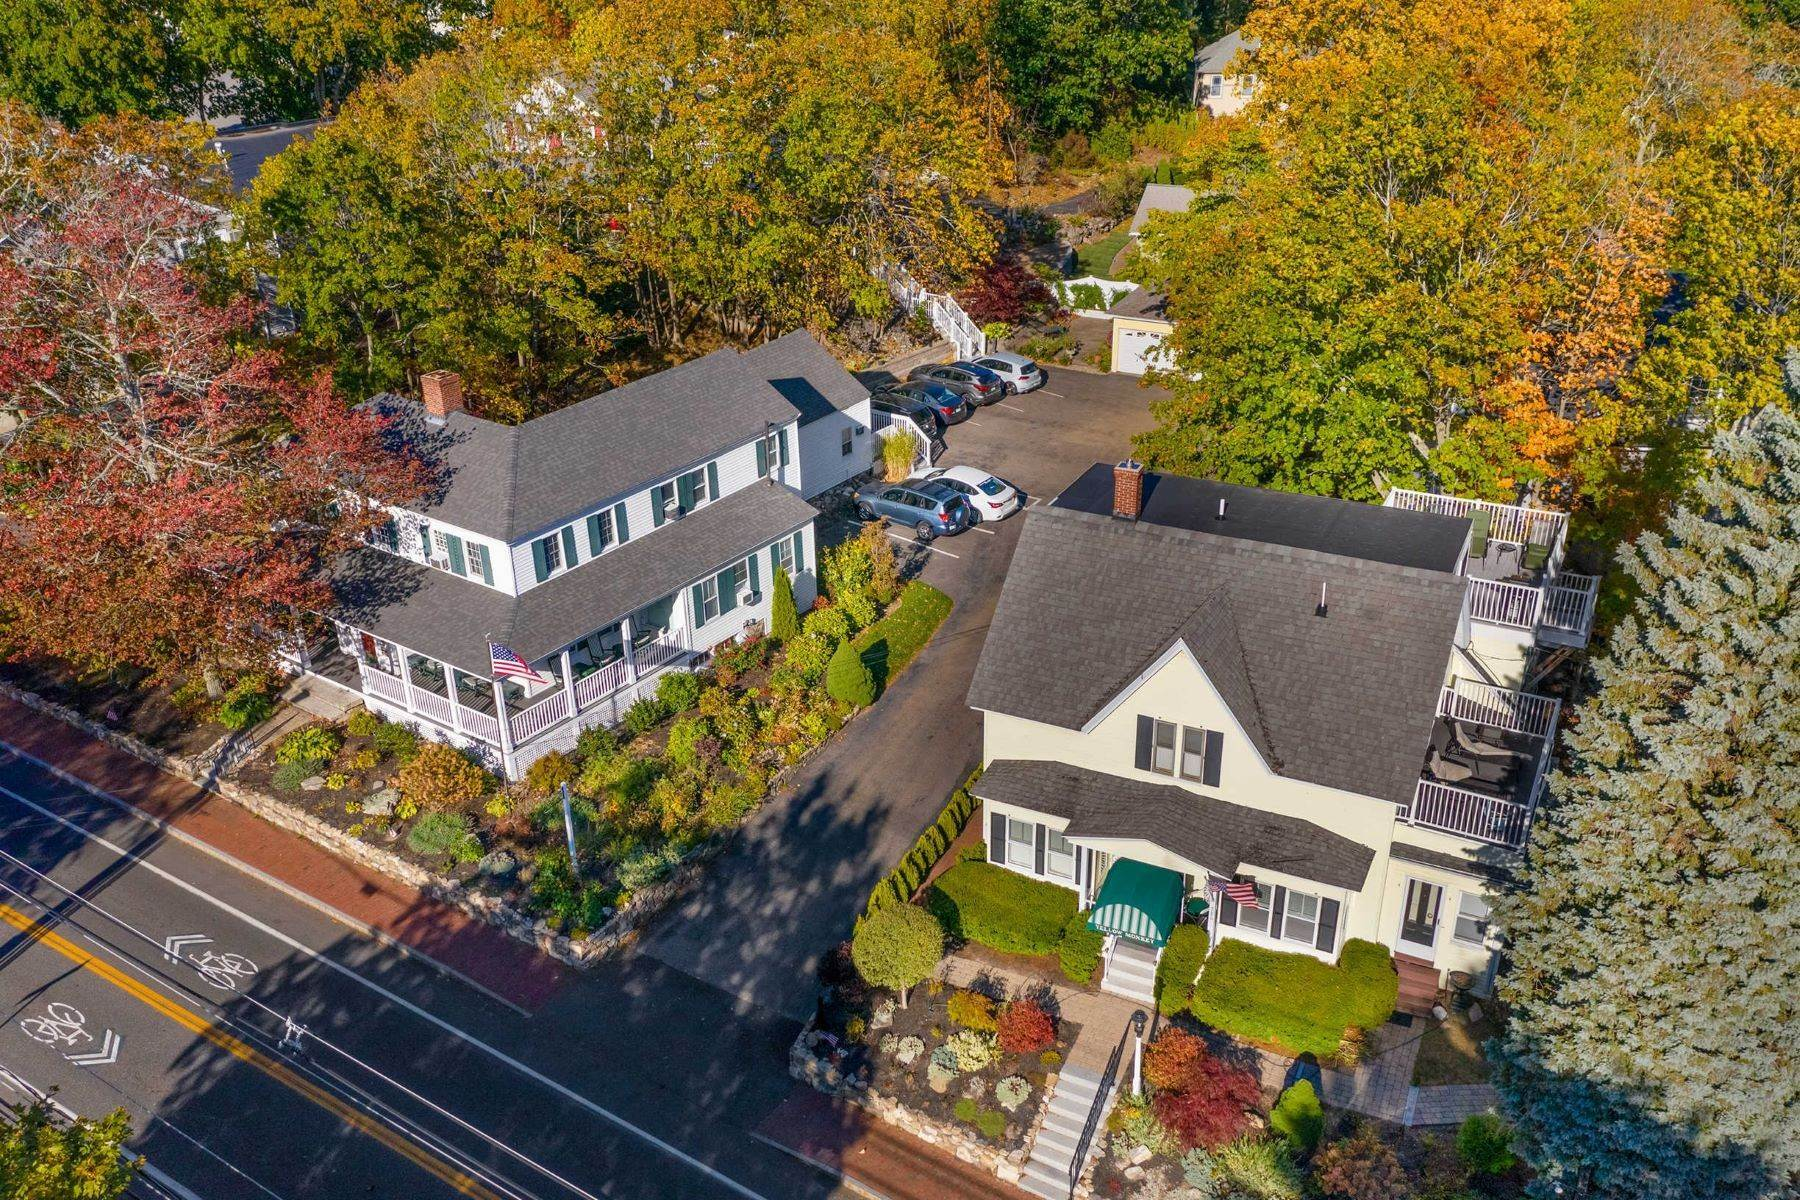 Multi-Family Homes for Sale at Landmark Multi-Family Residence in the Heart of Ogunquit Village 280 & 286 Main Street Ogunquit, Maine 03907 United States